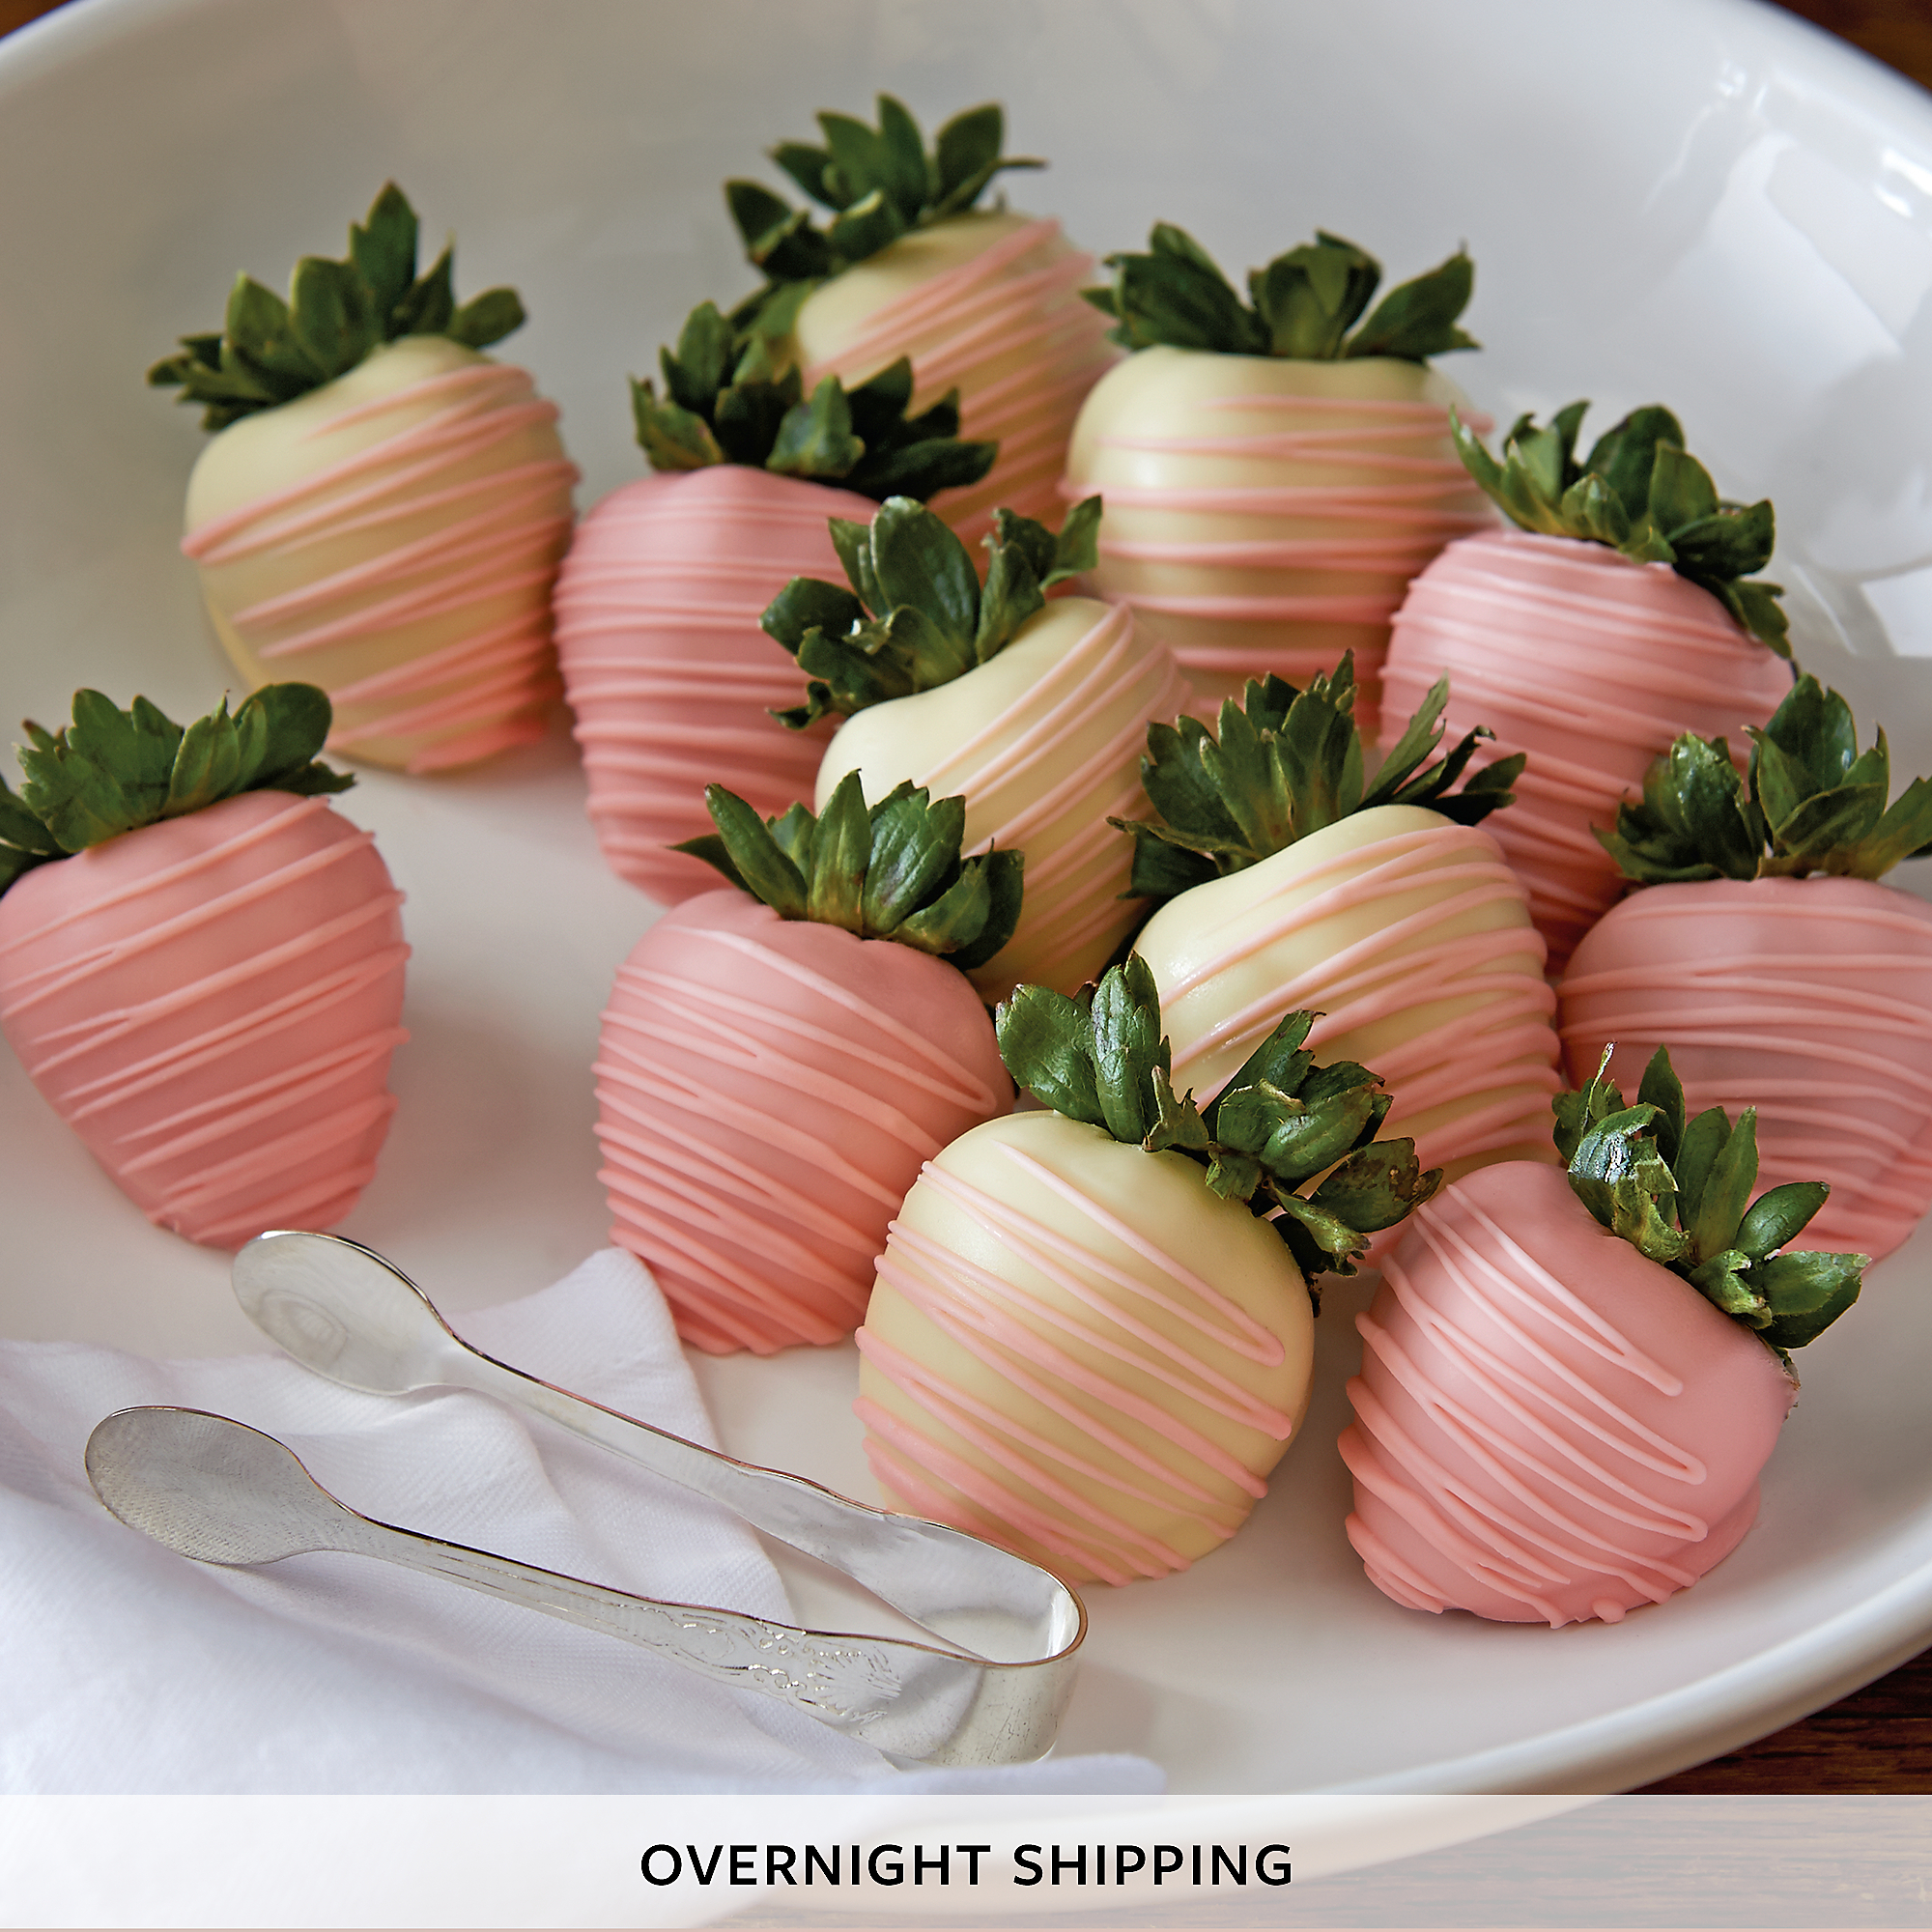 Pink and White Hand-Dipped Chocolate-Covered Strawberries - One Dozen